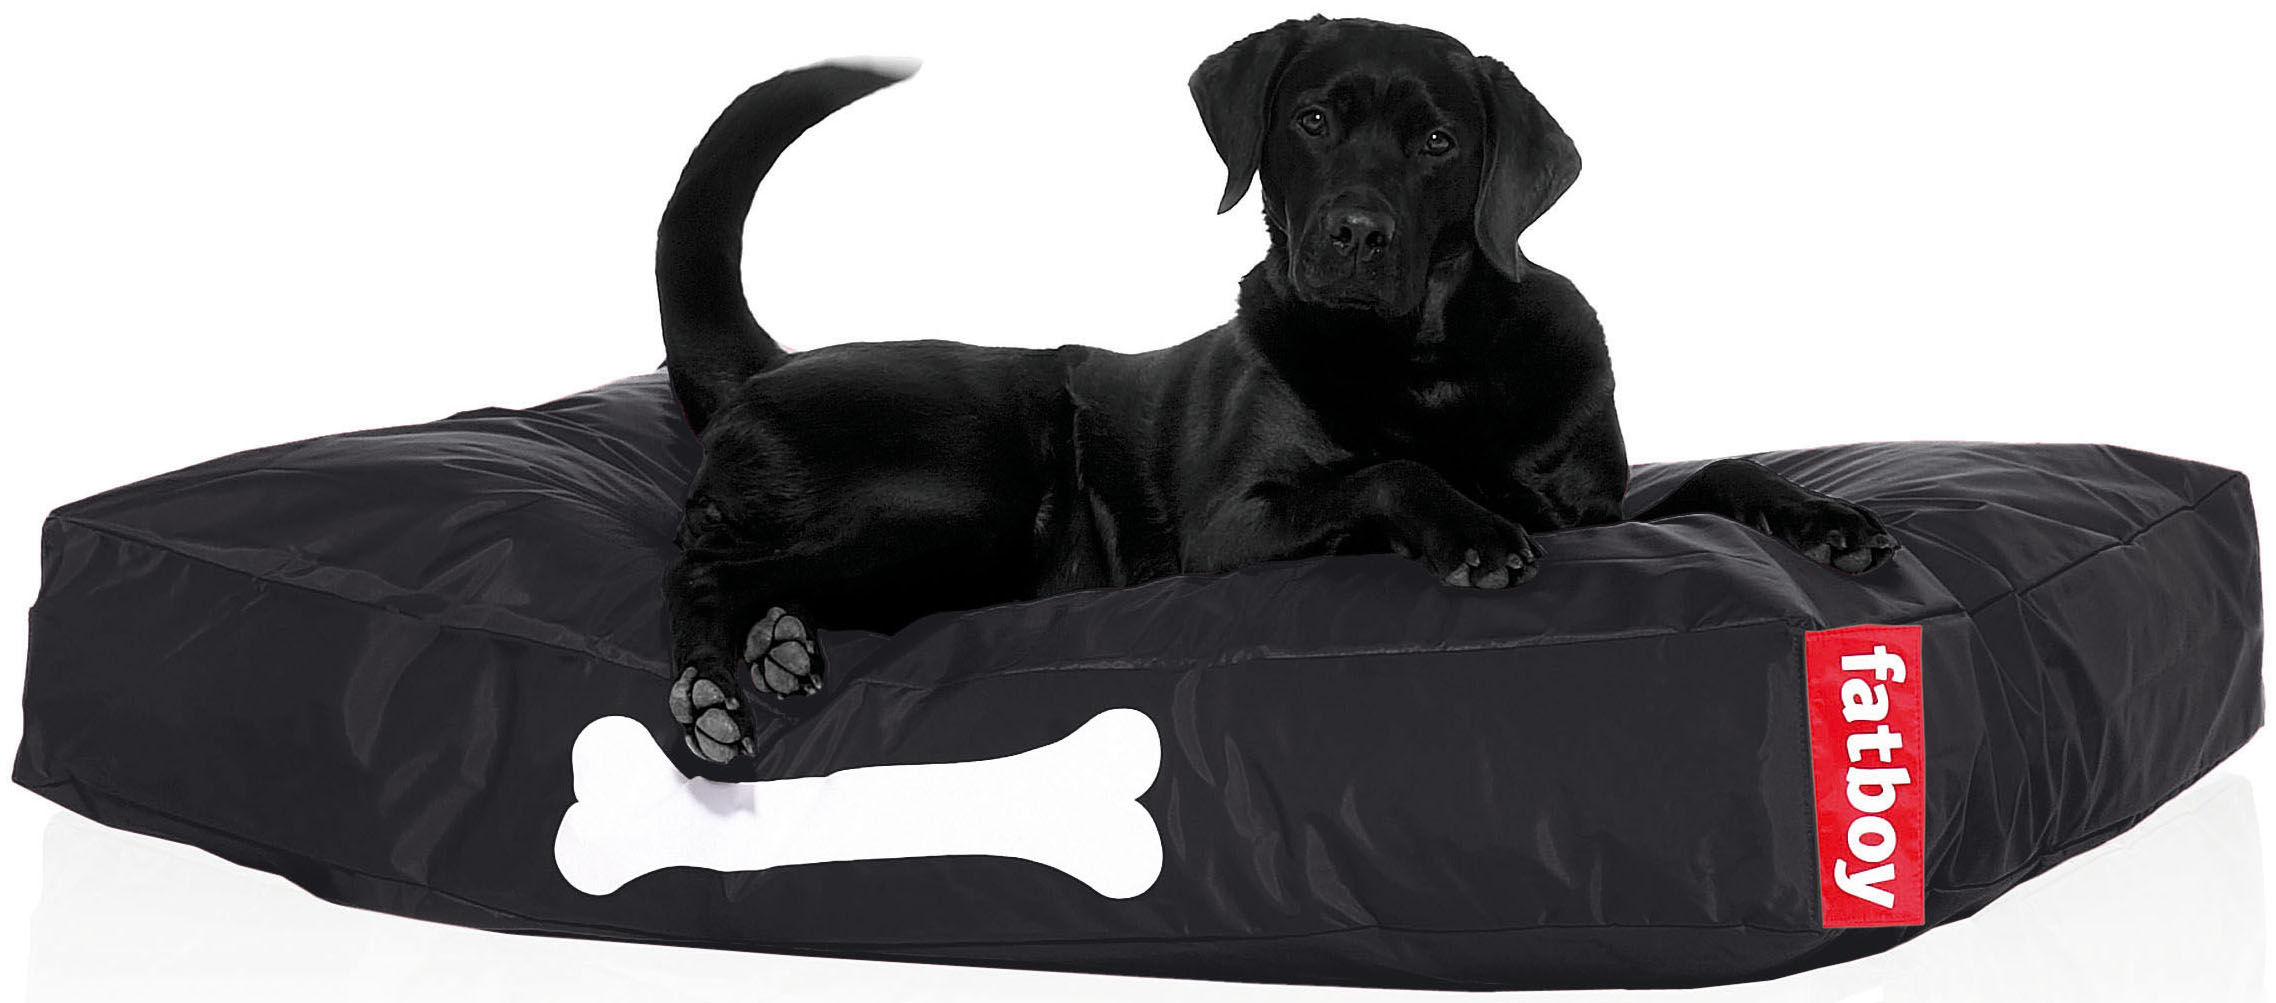 Furniture - Poufs & Floor Cushions - Doggielounge Pouf - For dogs - large by Fatboy - Black - Nylon fabric